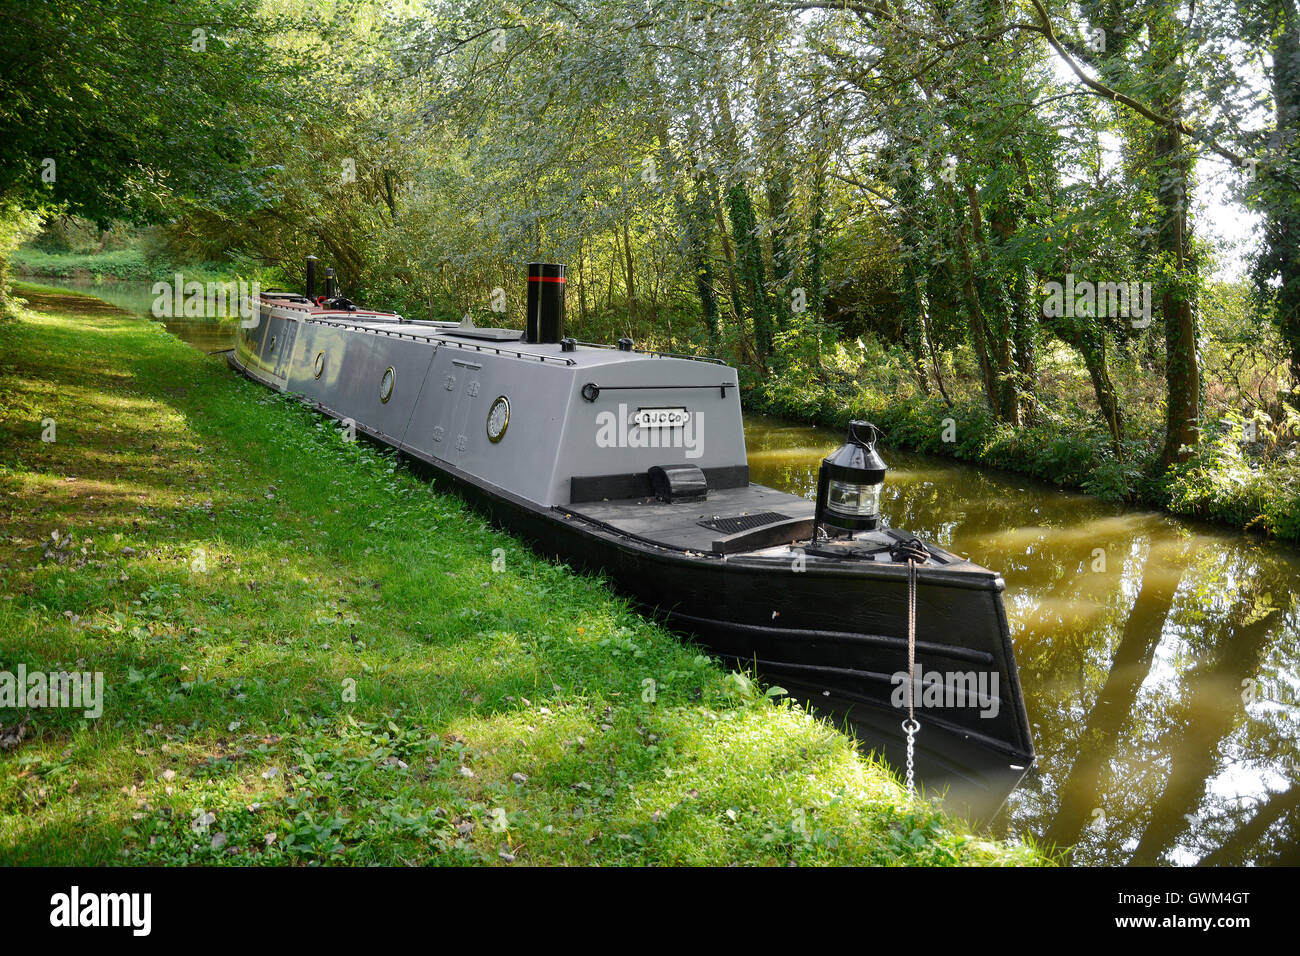 Steam tug 'Pilot', one of three used for pulling a string of boats through Braunston and Blisworth Tunnels - Stock Image